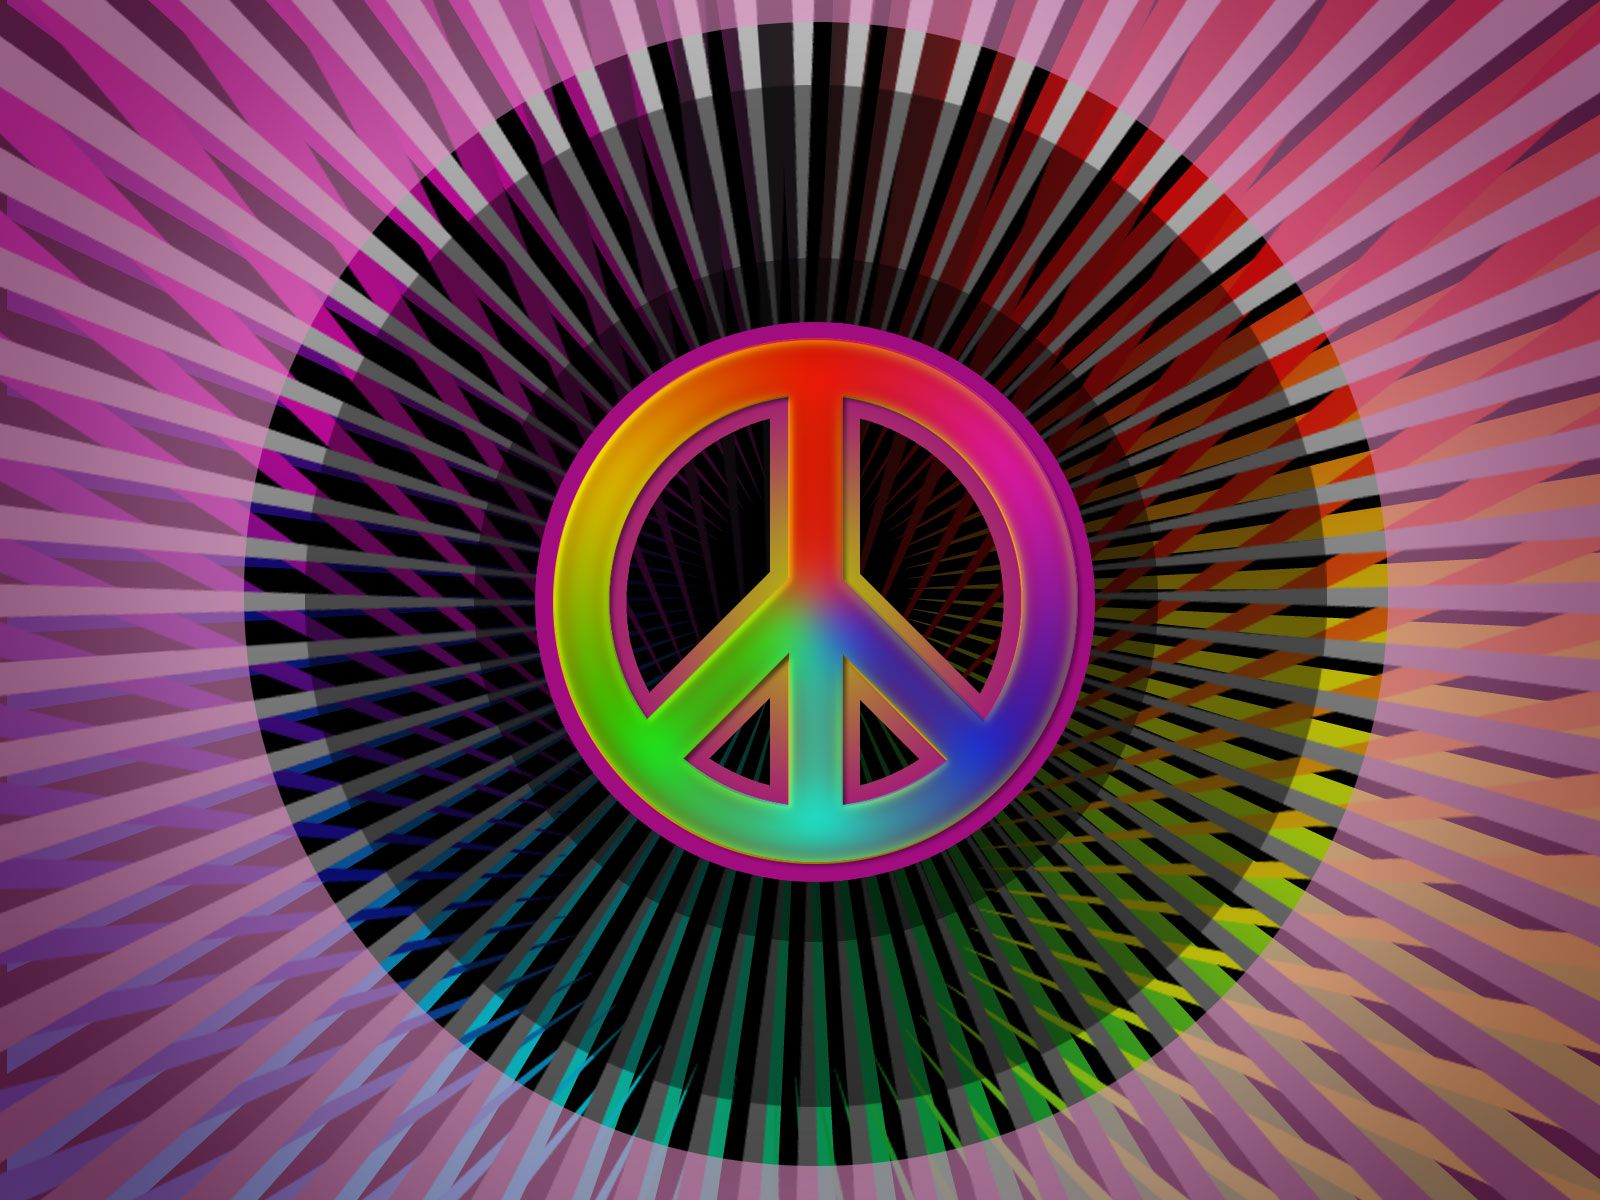 Colorful Peace Wallpaper Desktop Background Peace sign